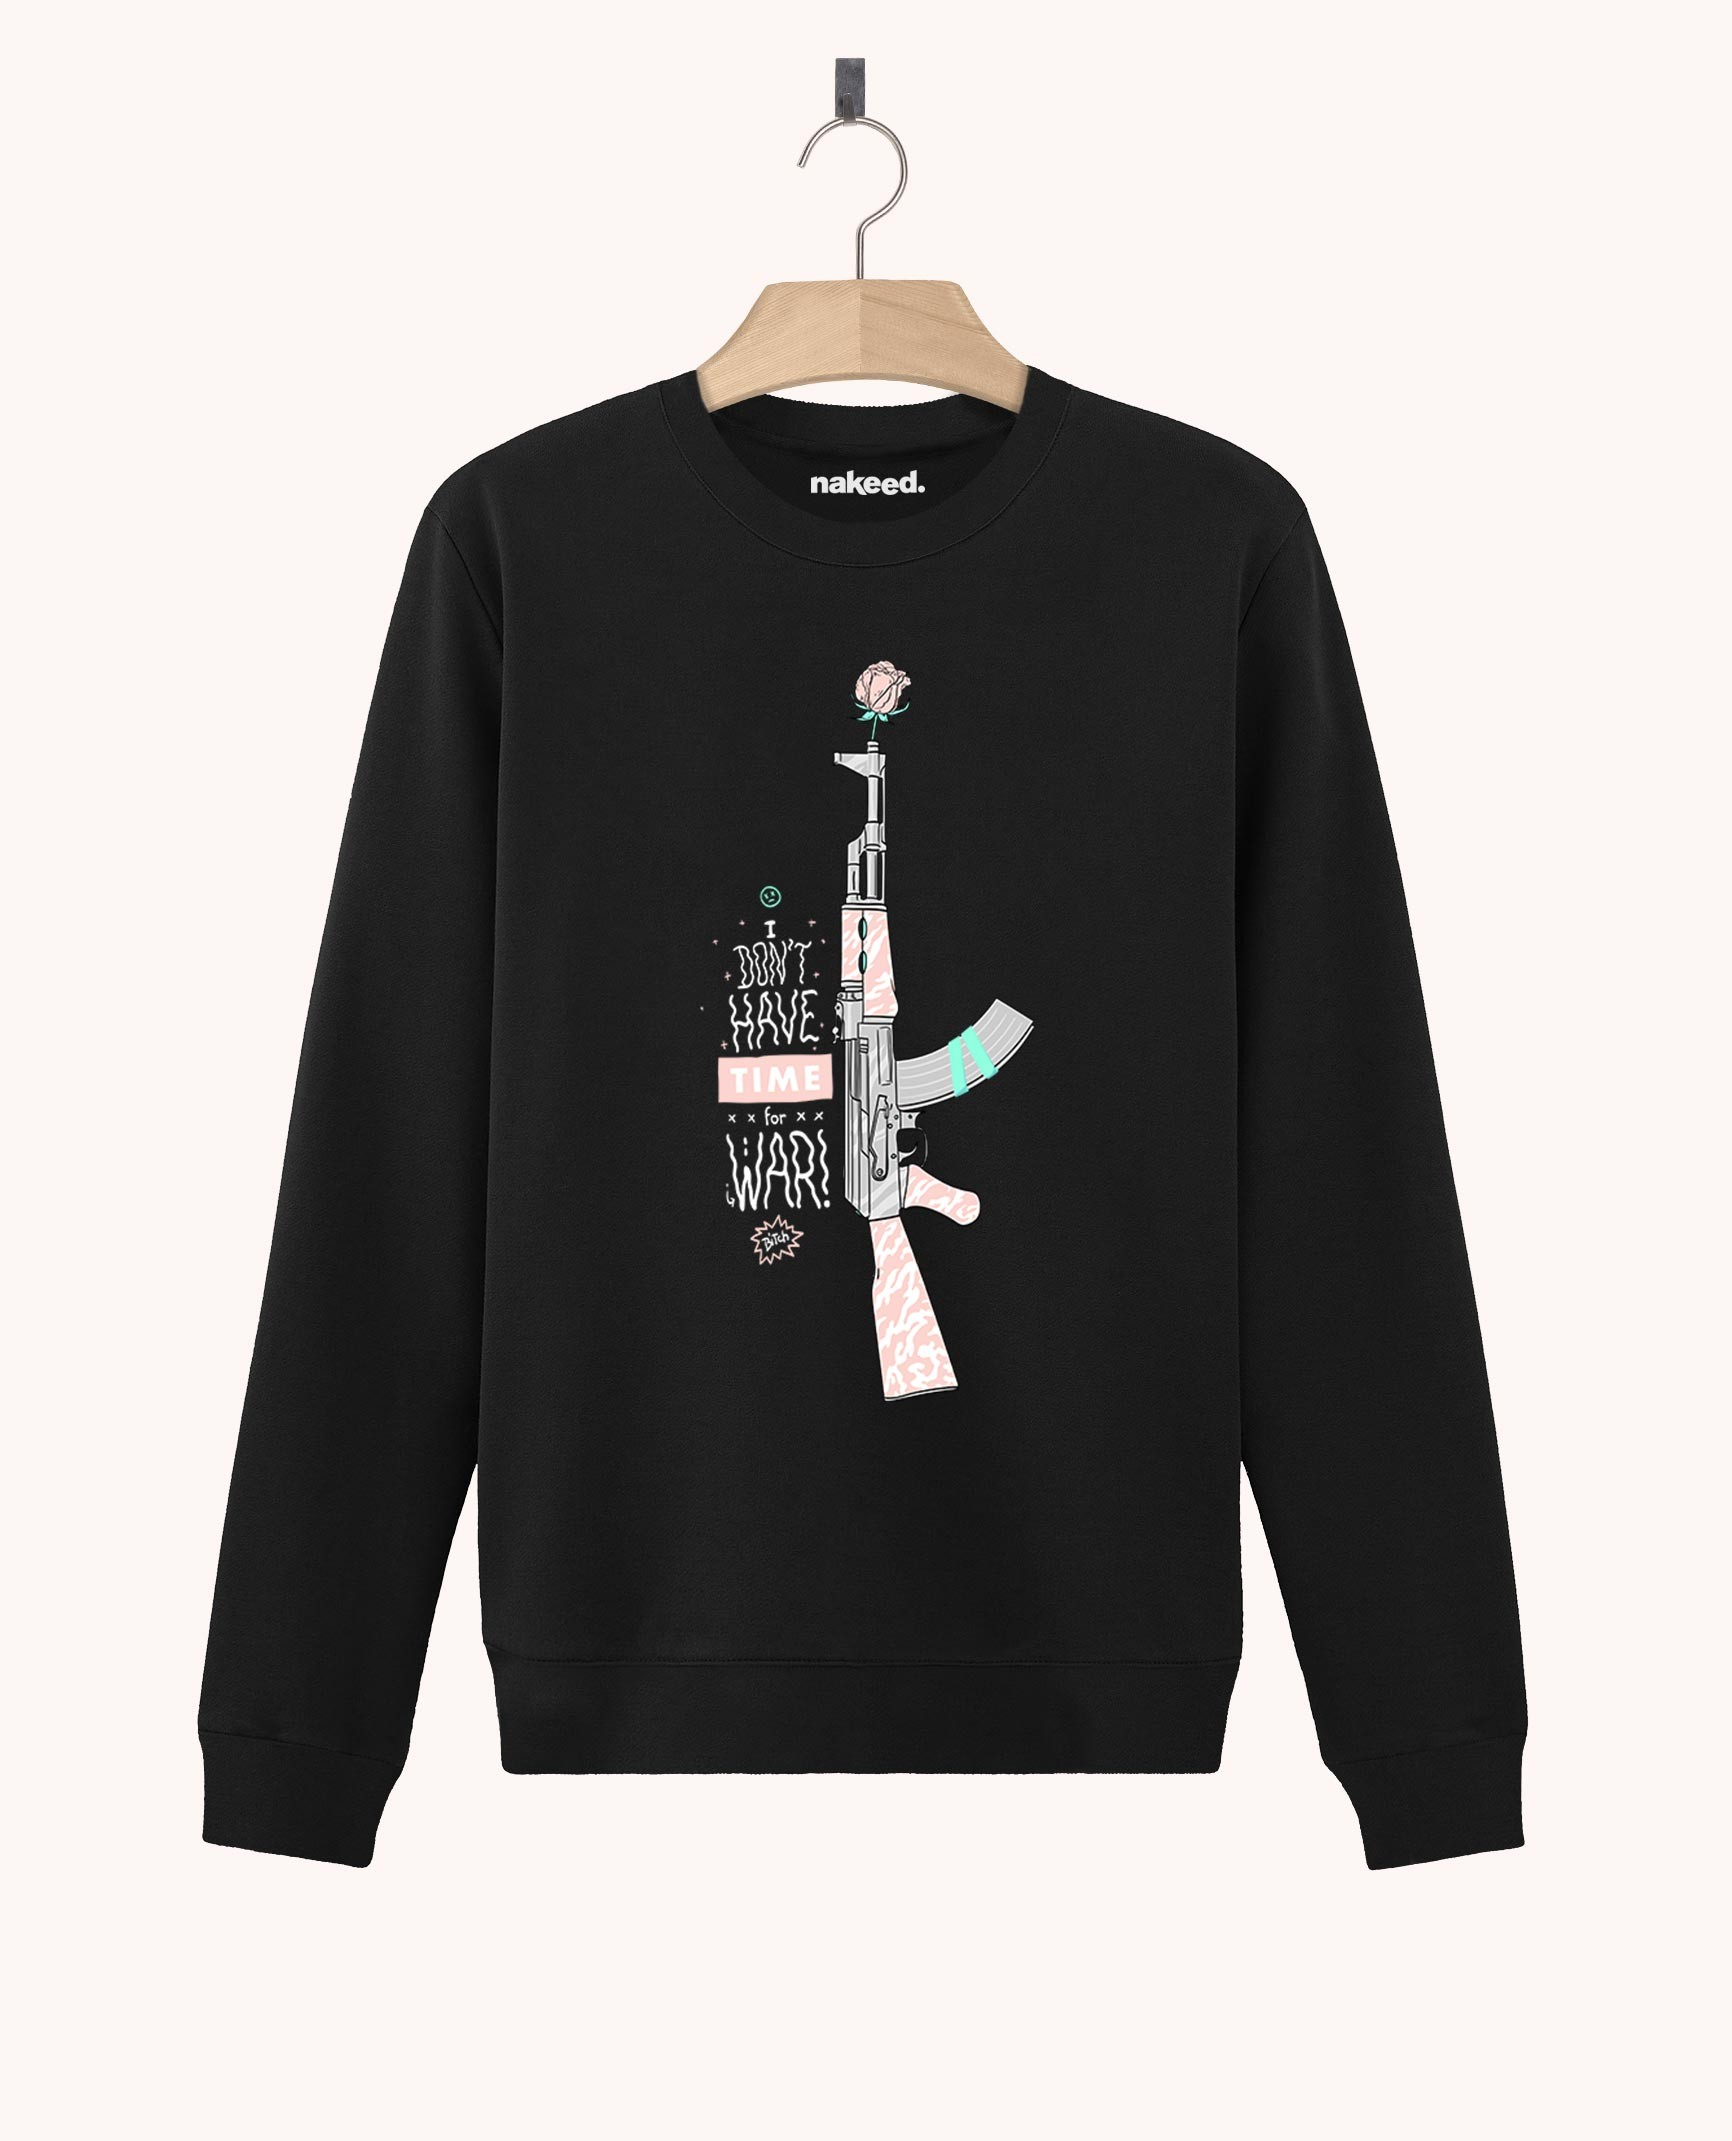 Sweatshirt Don't Have Time for War